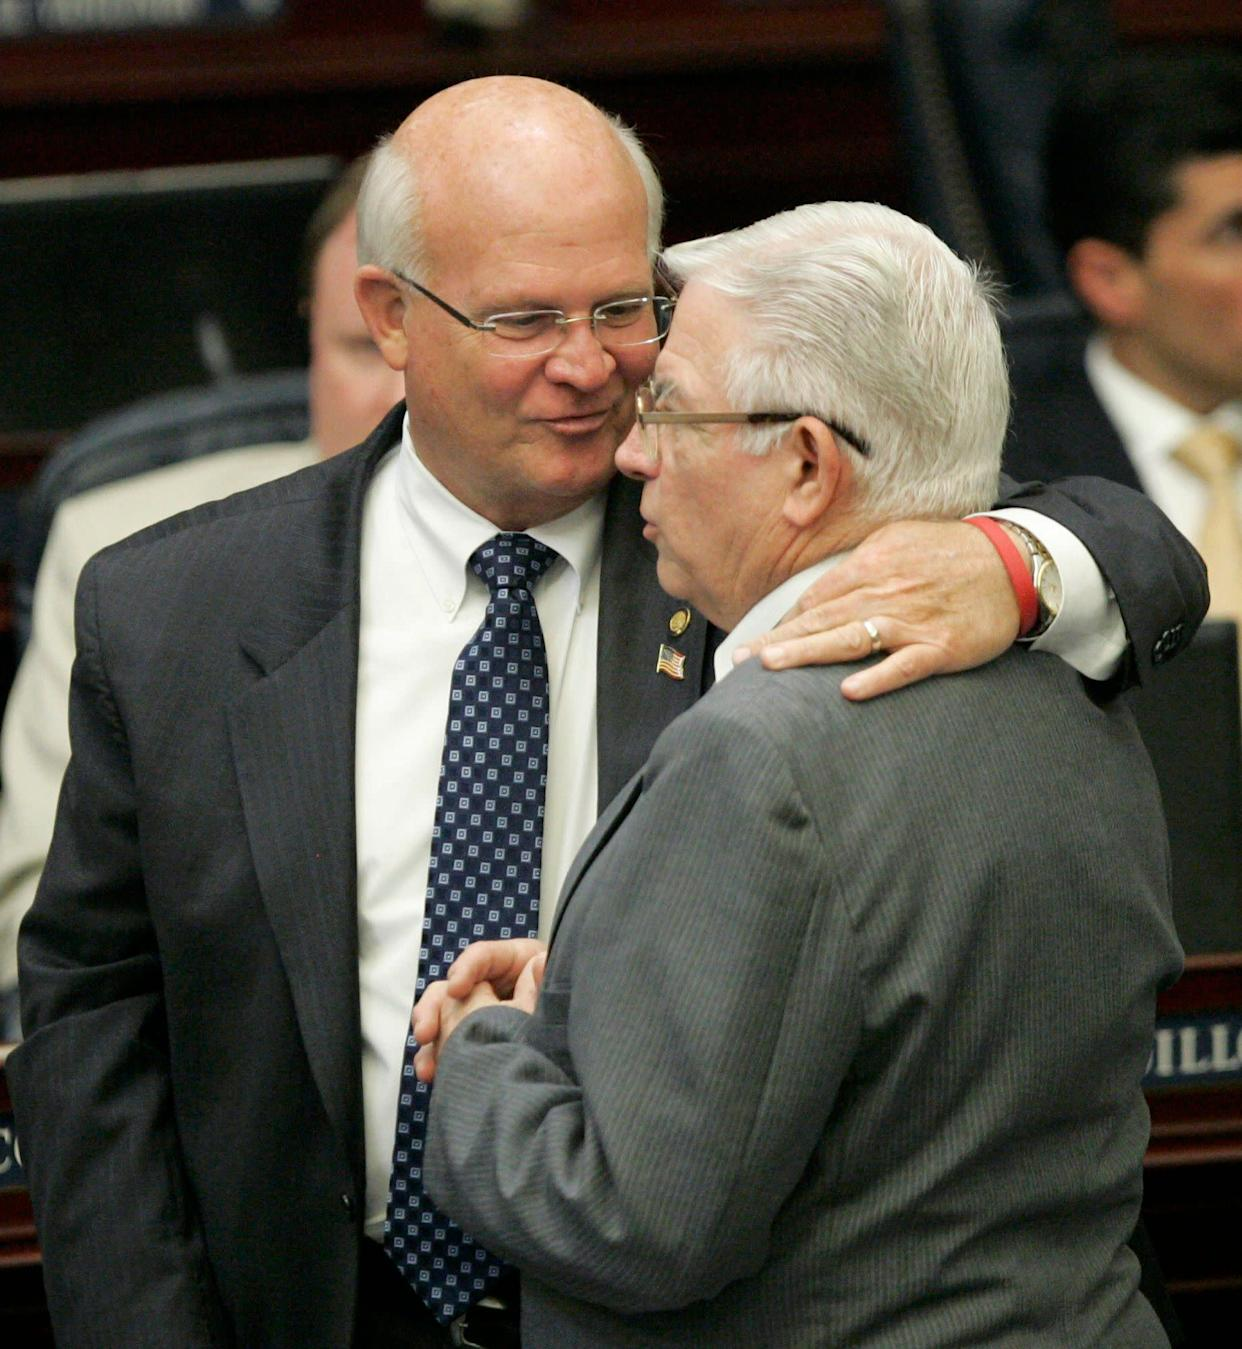 "Baxley, who once sponsored Florida's controversial Stand Your Ground law, <a href=""http://politics.heraldtribune.com/2012/12/17/florida-legislator-allow-guns-in-schools/"" rel=""nofollow noopener"" target=""_blank"" data-ylk=""slk:told the Sarasota Herald-Tribune"" class=""link rapid-noclick-resp"">told the Sarasota Herald-Tribune </a>that keeping guns out of schools makes them a target for attacks. ""We need to be more realistic at looking at this policy,"" he said. ""In our zealousness to protect people from harm we've created all these gun-free zones and what we've inadvertently done is we've made them a target. A helpless target is exactly what a deranged person is looking for where they cannot be stopped."""